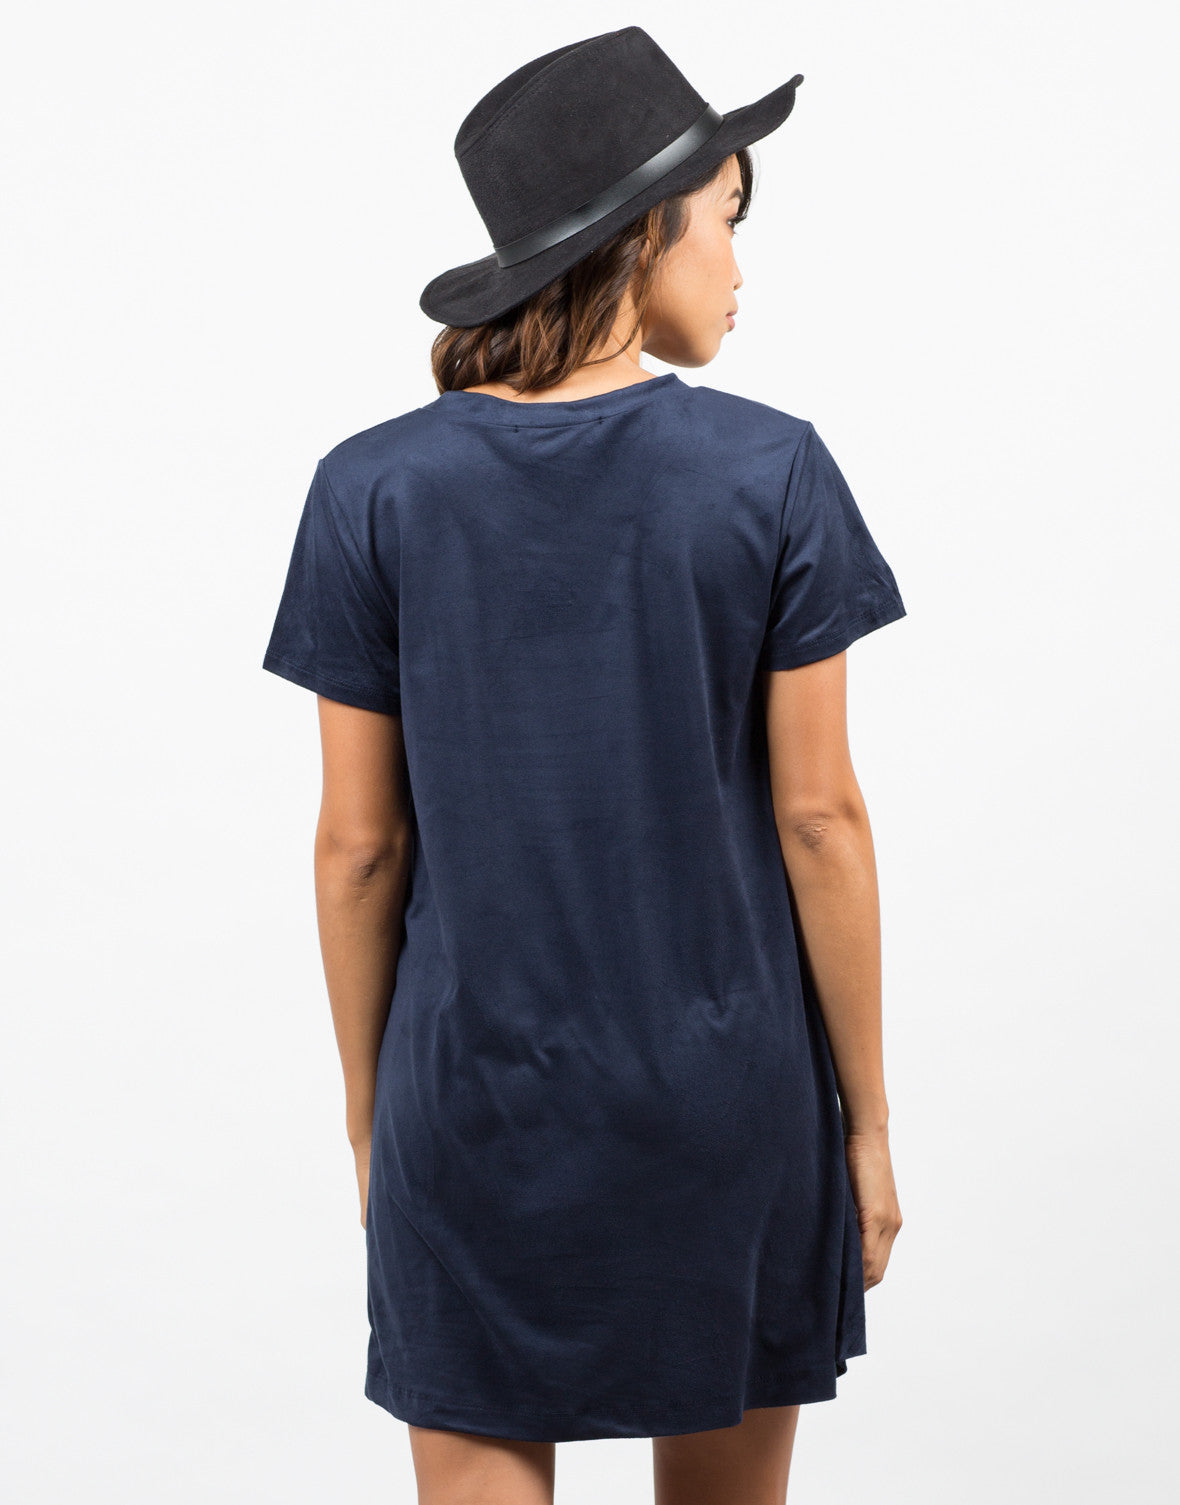 Back View of Suede T-Shirt Dress